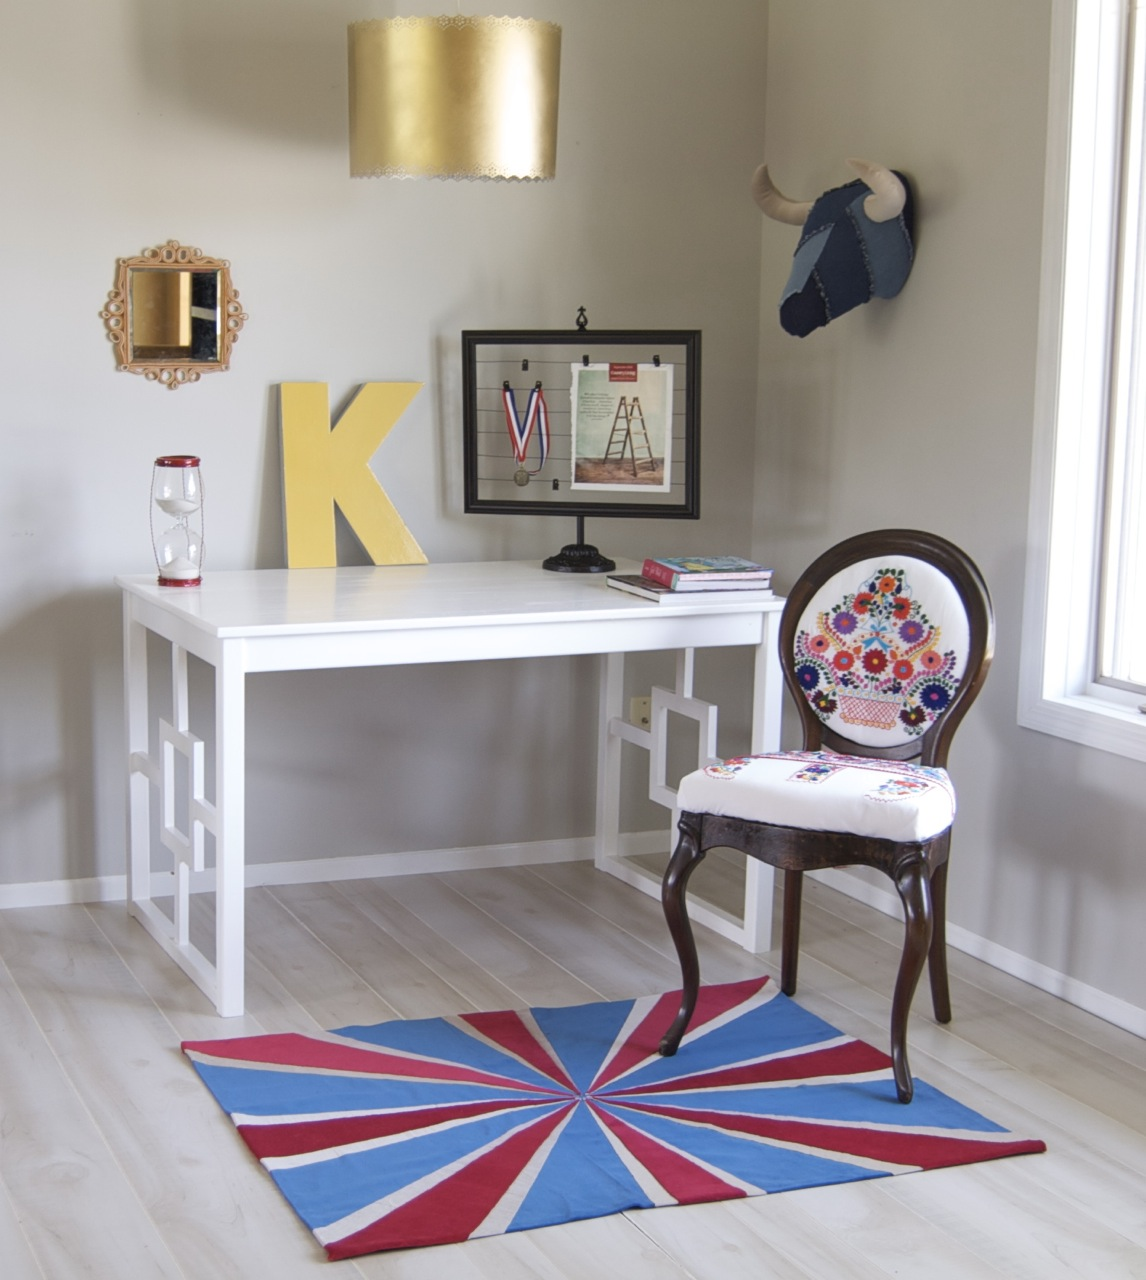 Find out how to transform a plain IKEA table into a chic new desk.  Source: Matsutake